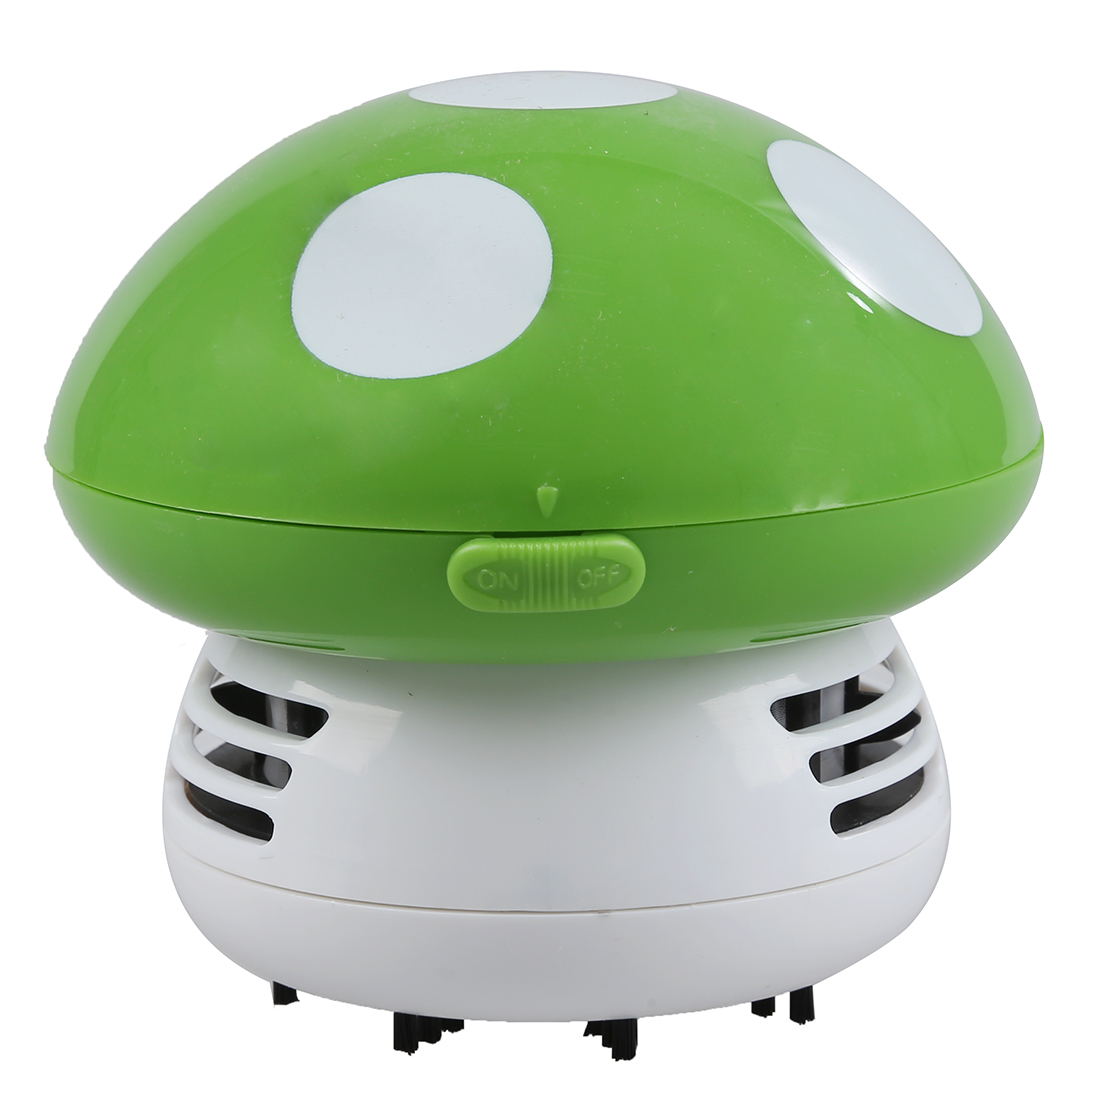 New Home Handheld Mushroom Shaped Mini Vacuum Cleaner Car Laptop keyboard Desktop Dust cleaner-green